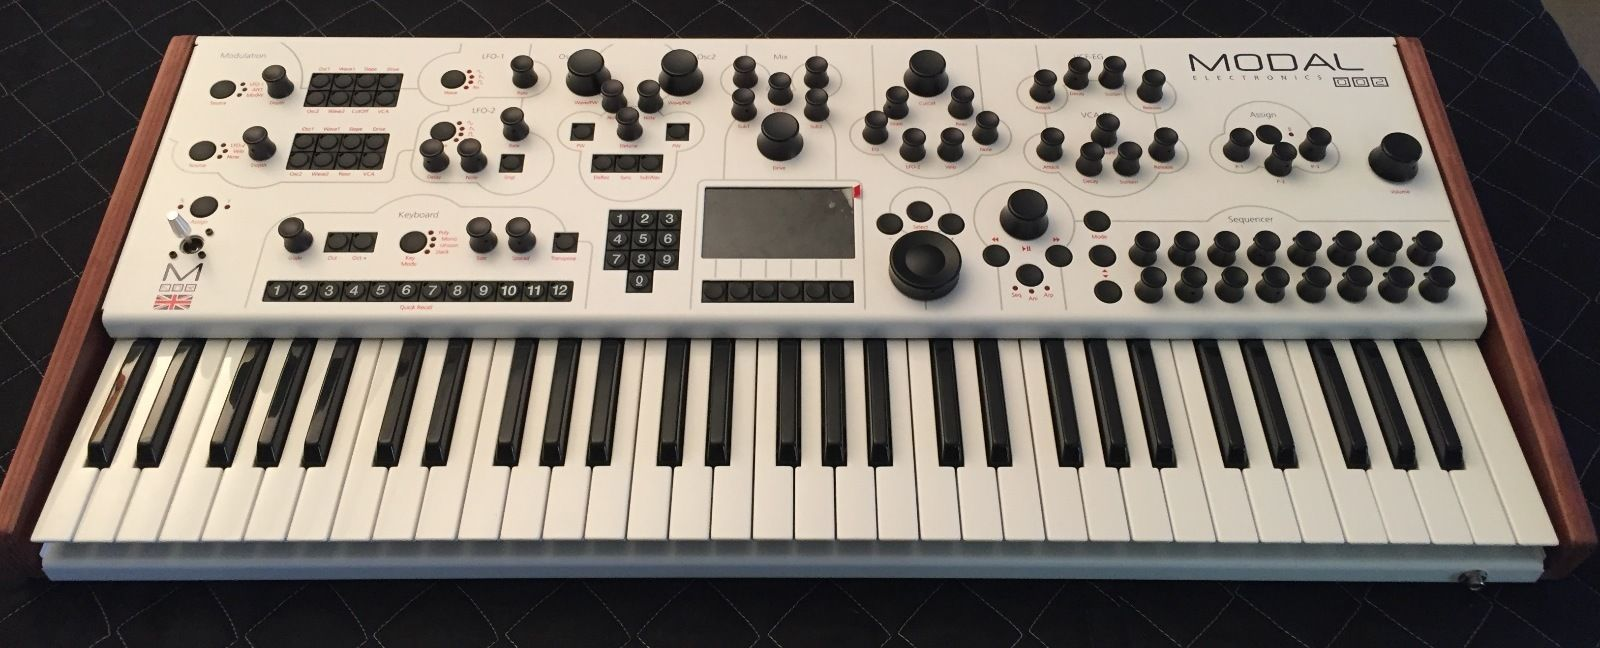 matrixsynth modal electronics 002 polyphonic multi timbral synthesizer sn 002 0131. Black Bedroom Furniture Sets. Home Design Ideas